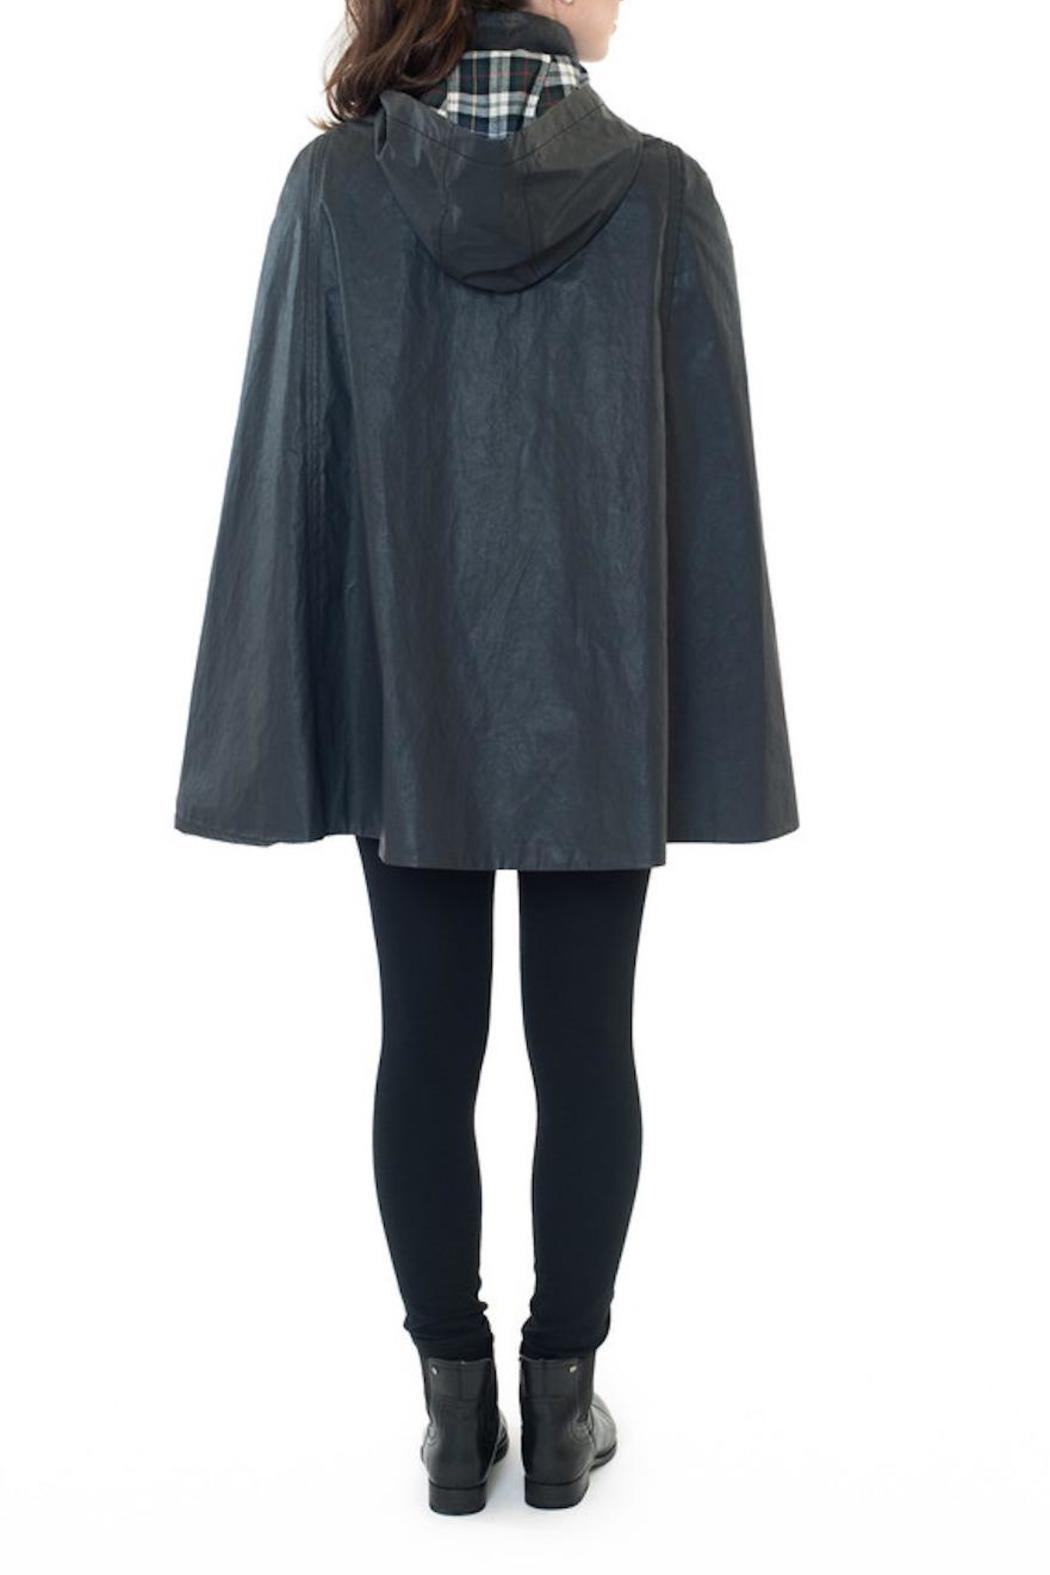 Ellsworth Amp Ivey Wax Cotton Cape From Greenville By Black